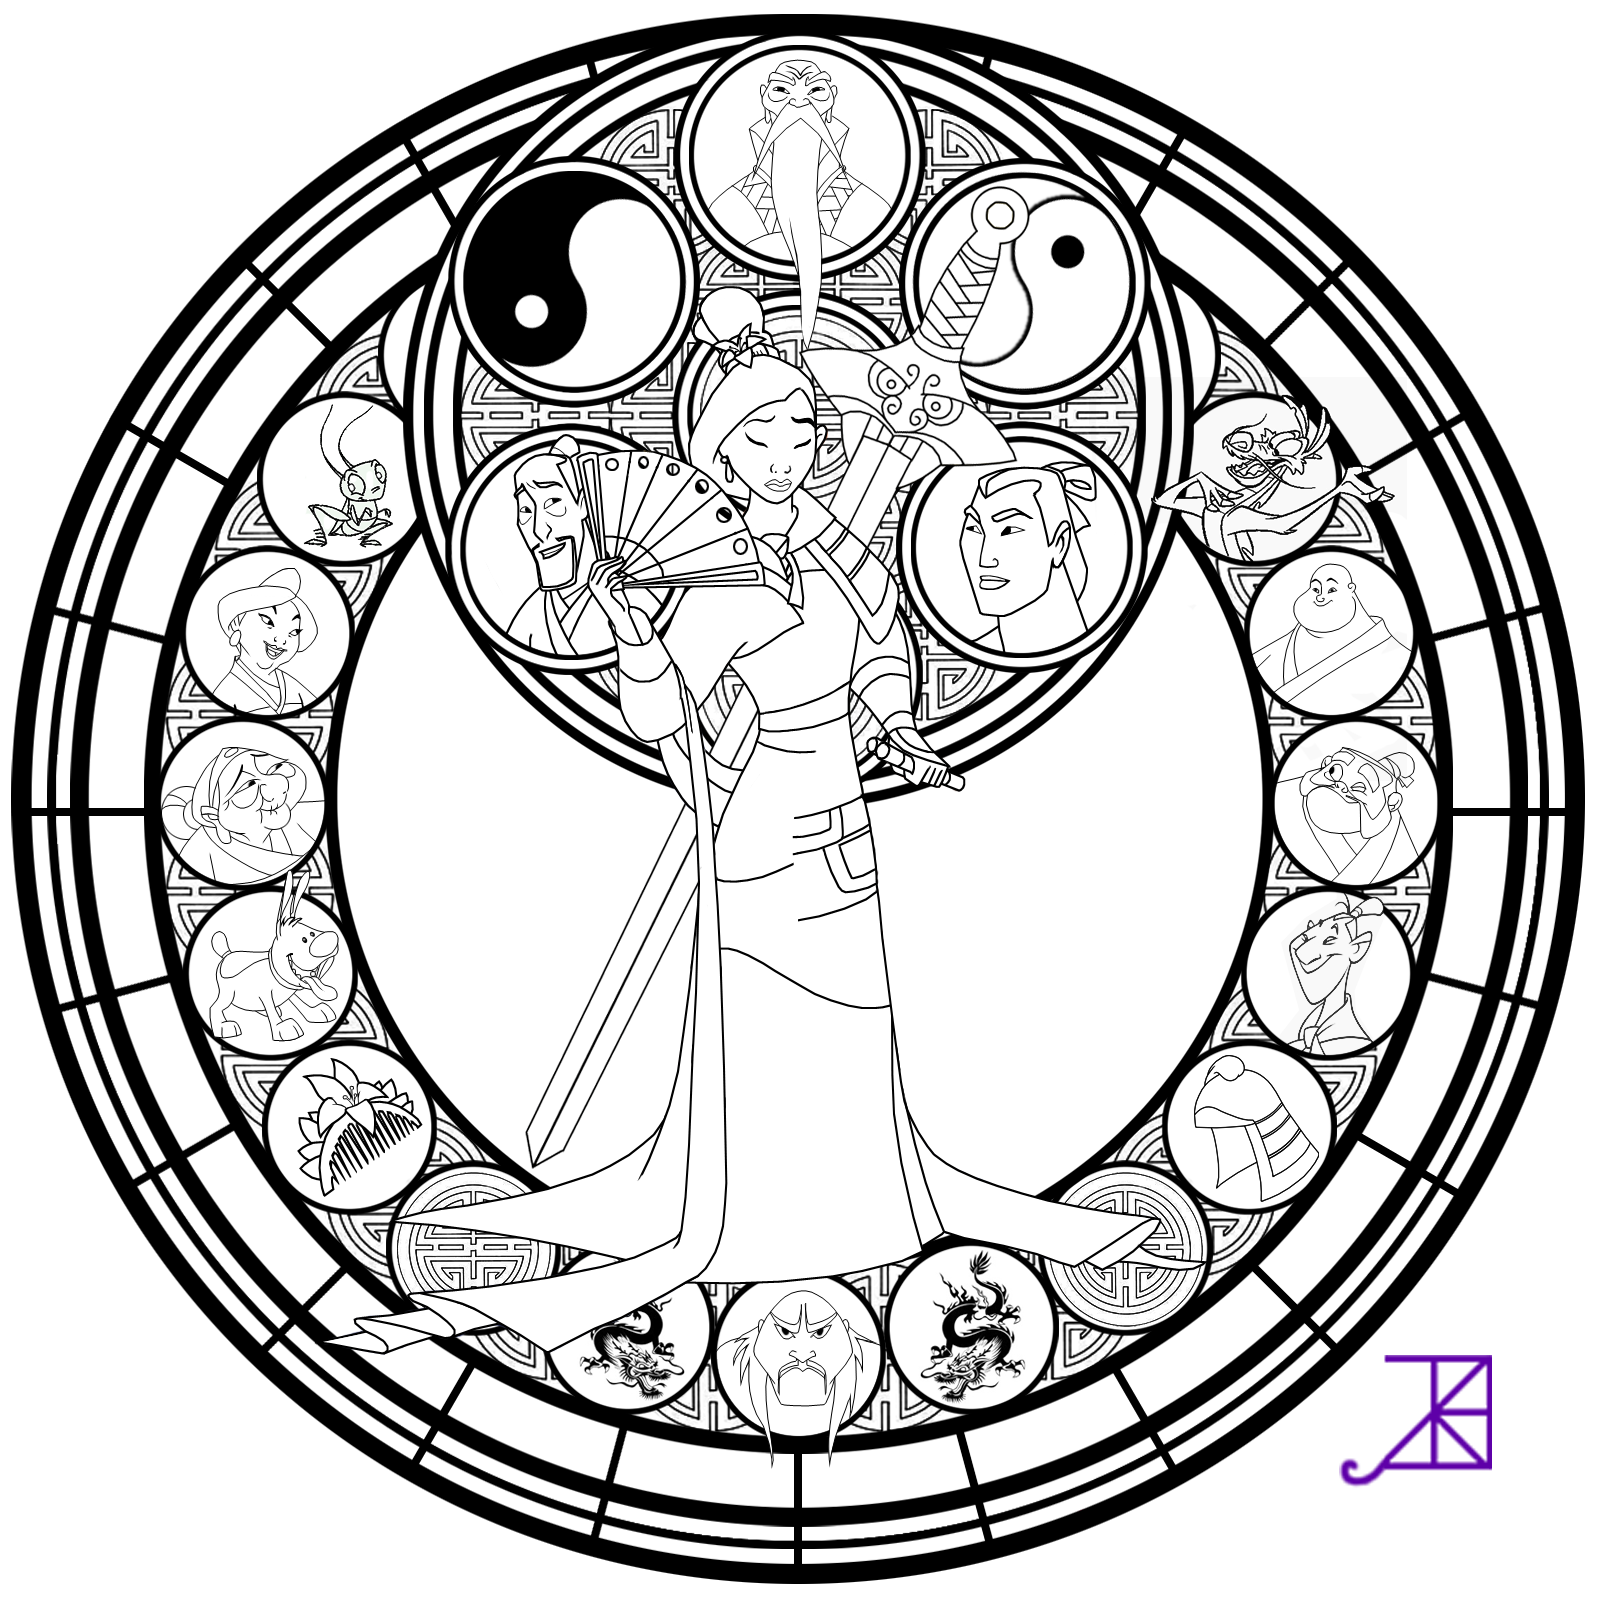 Mulan Stained Glass Line Art By Akili Amethyst D4vu8pv Png 1600 1600 Disney Coloring Pages Coloring Pages Coloring Books